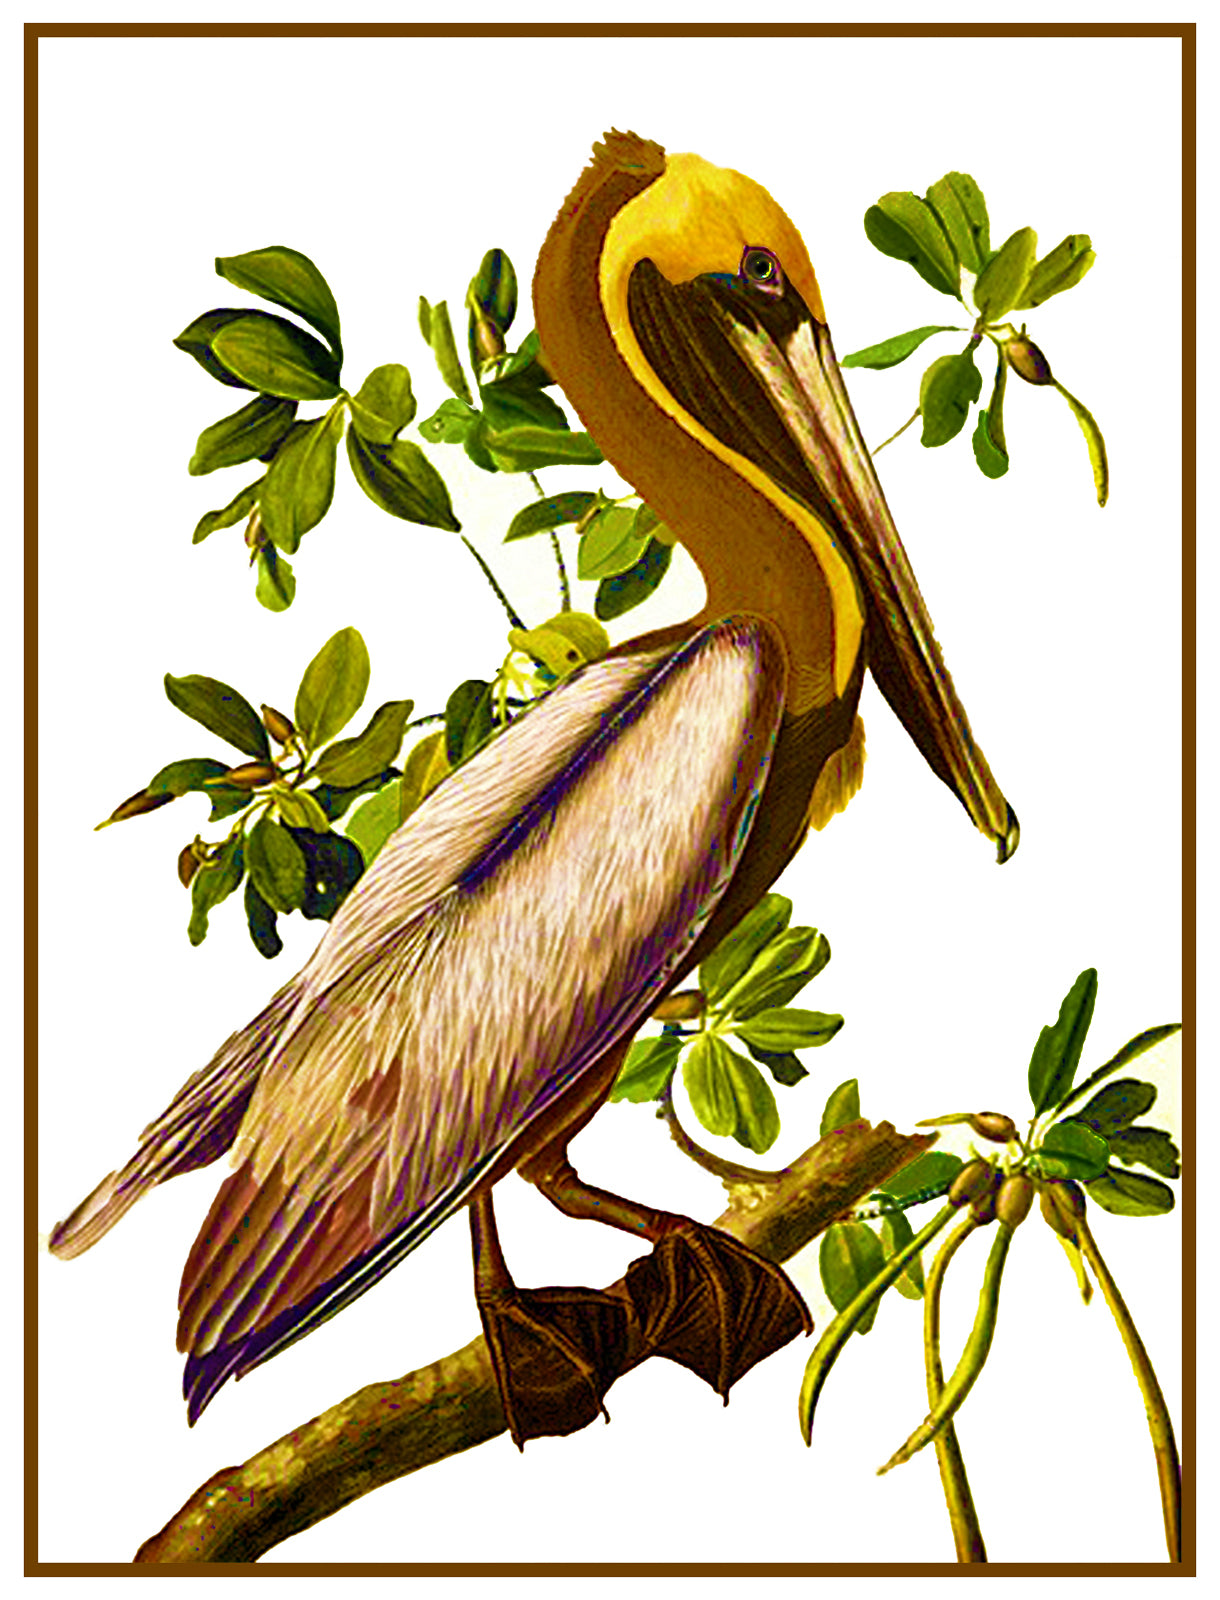 Large Size Symbols Scarlet Quince AUD006lg Brown Pelican by John James Audubon Counted Cross Stitch Chart